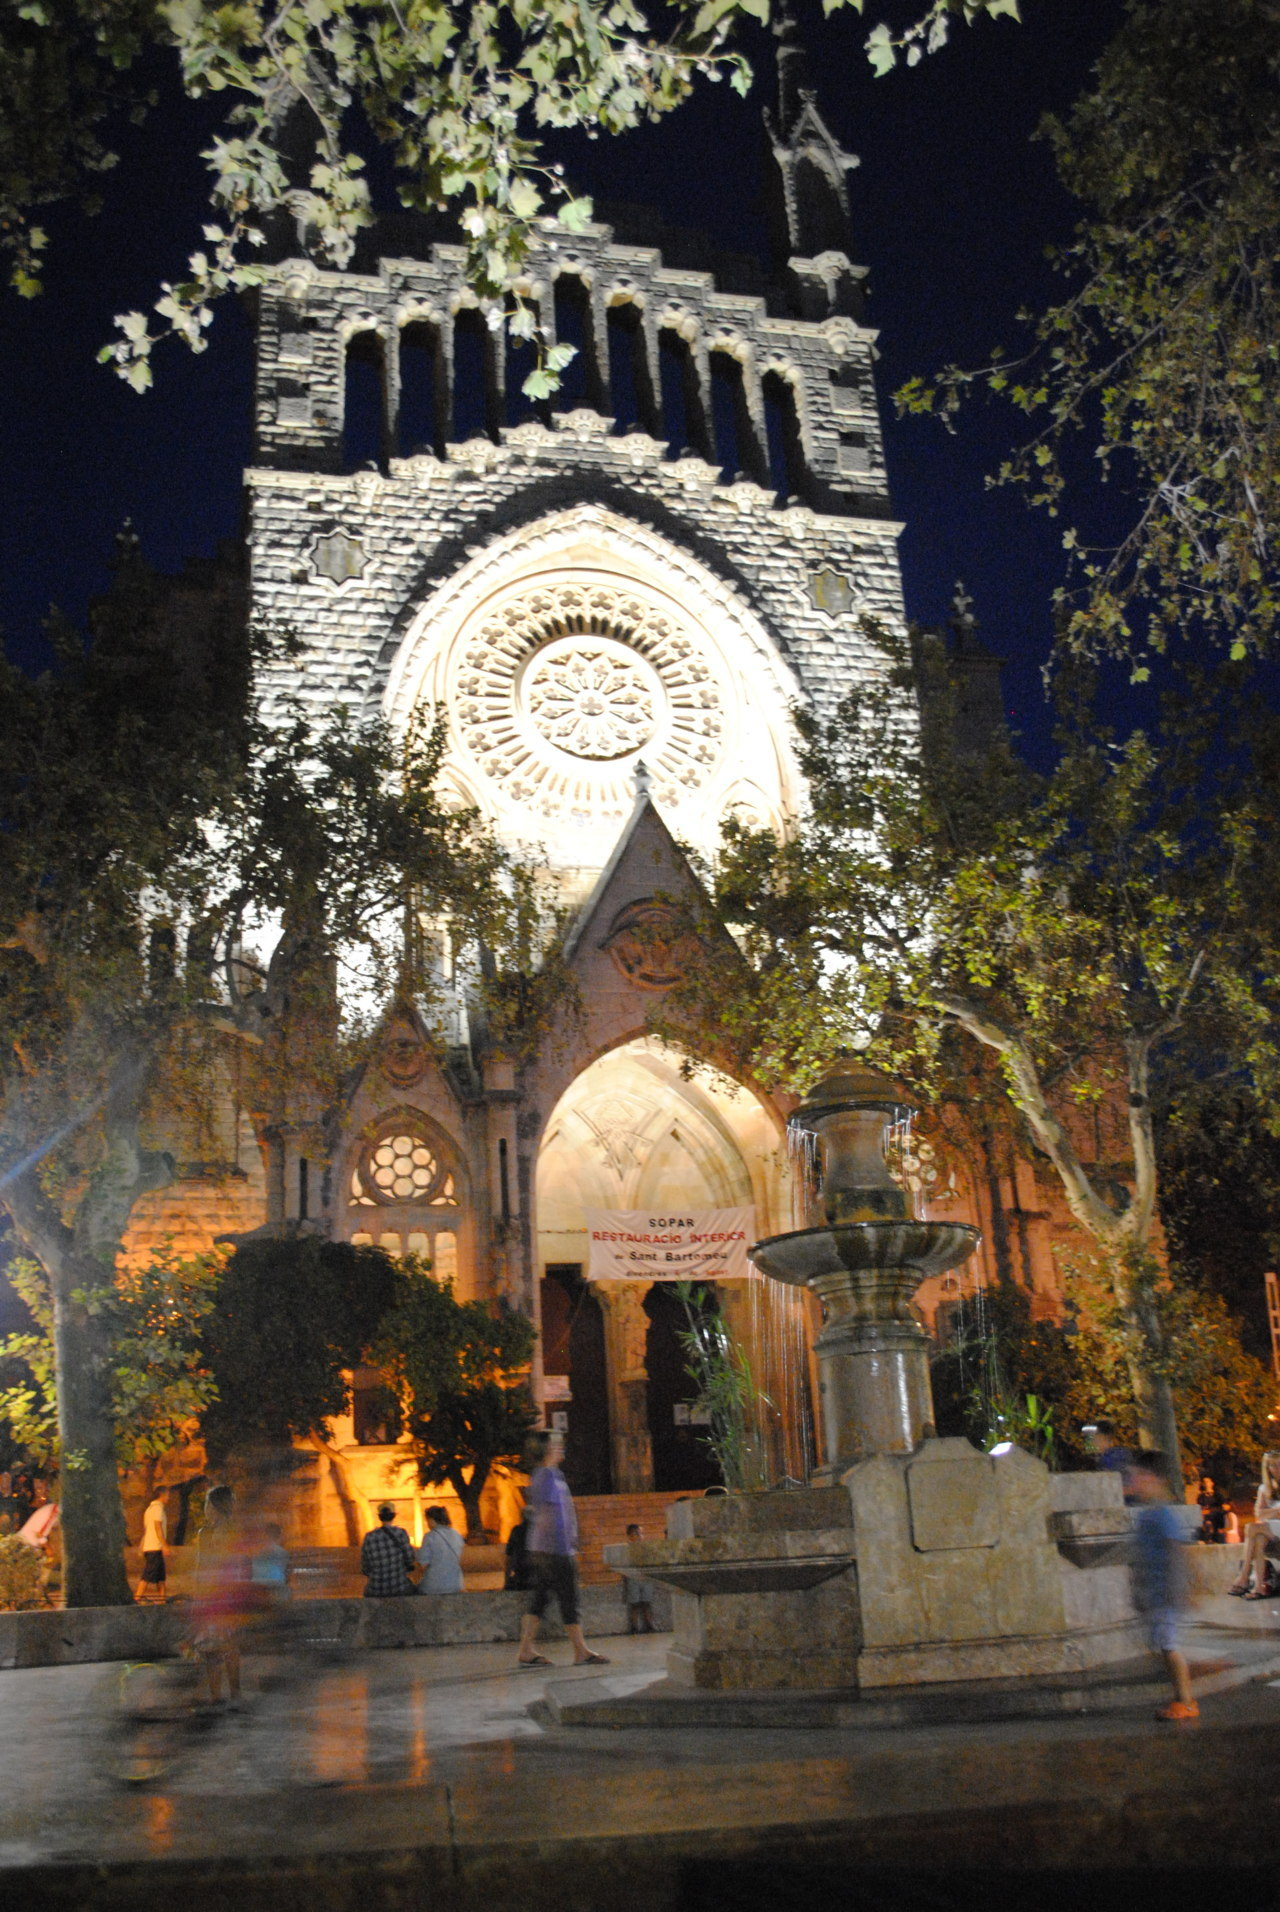 Location: Soller square, Mallorca Camera: Nikon D3000 While sat in the square at night I took this photo. The building is the Church of St. Bartholomew and was designed by one of Antonio Gaudi's disciples. I waited until dark in order for the Church to be lit up and highlight its beauty.